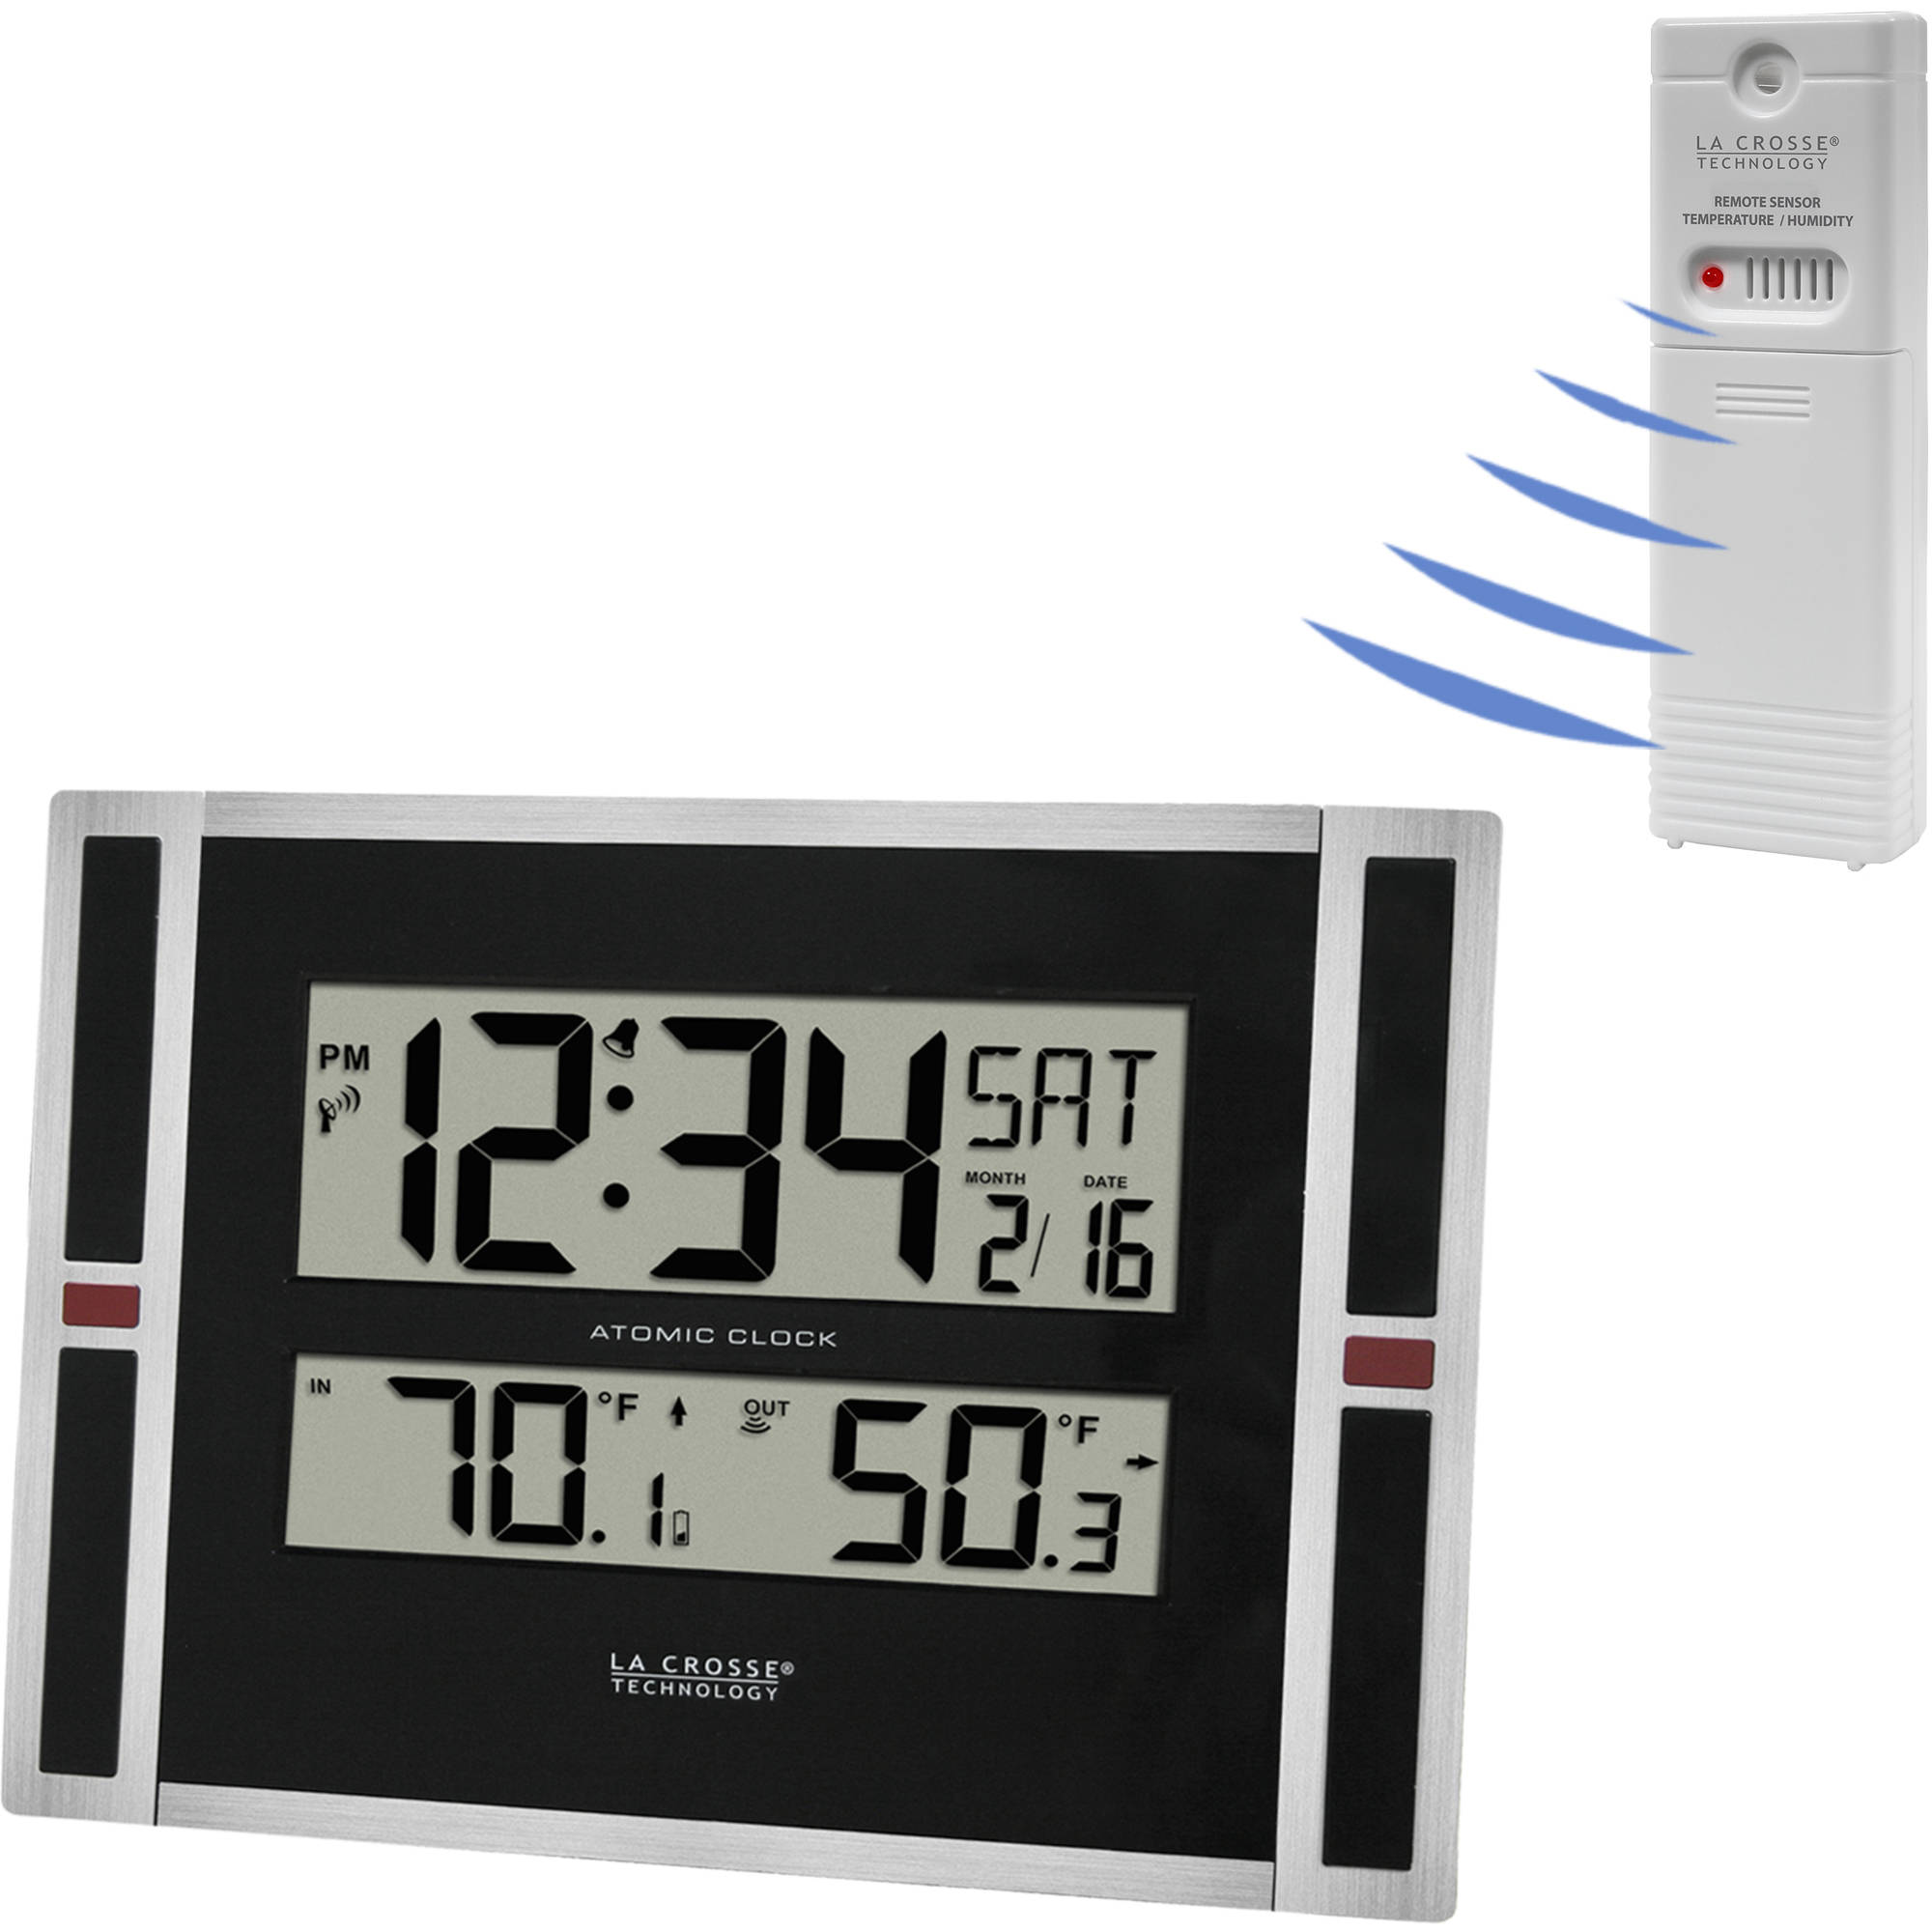 Better Homes and Gardens Atomic Clock with Forecast Walmartcom